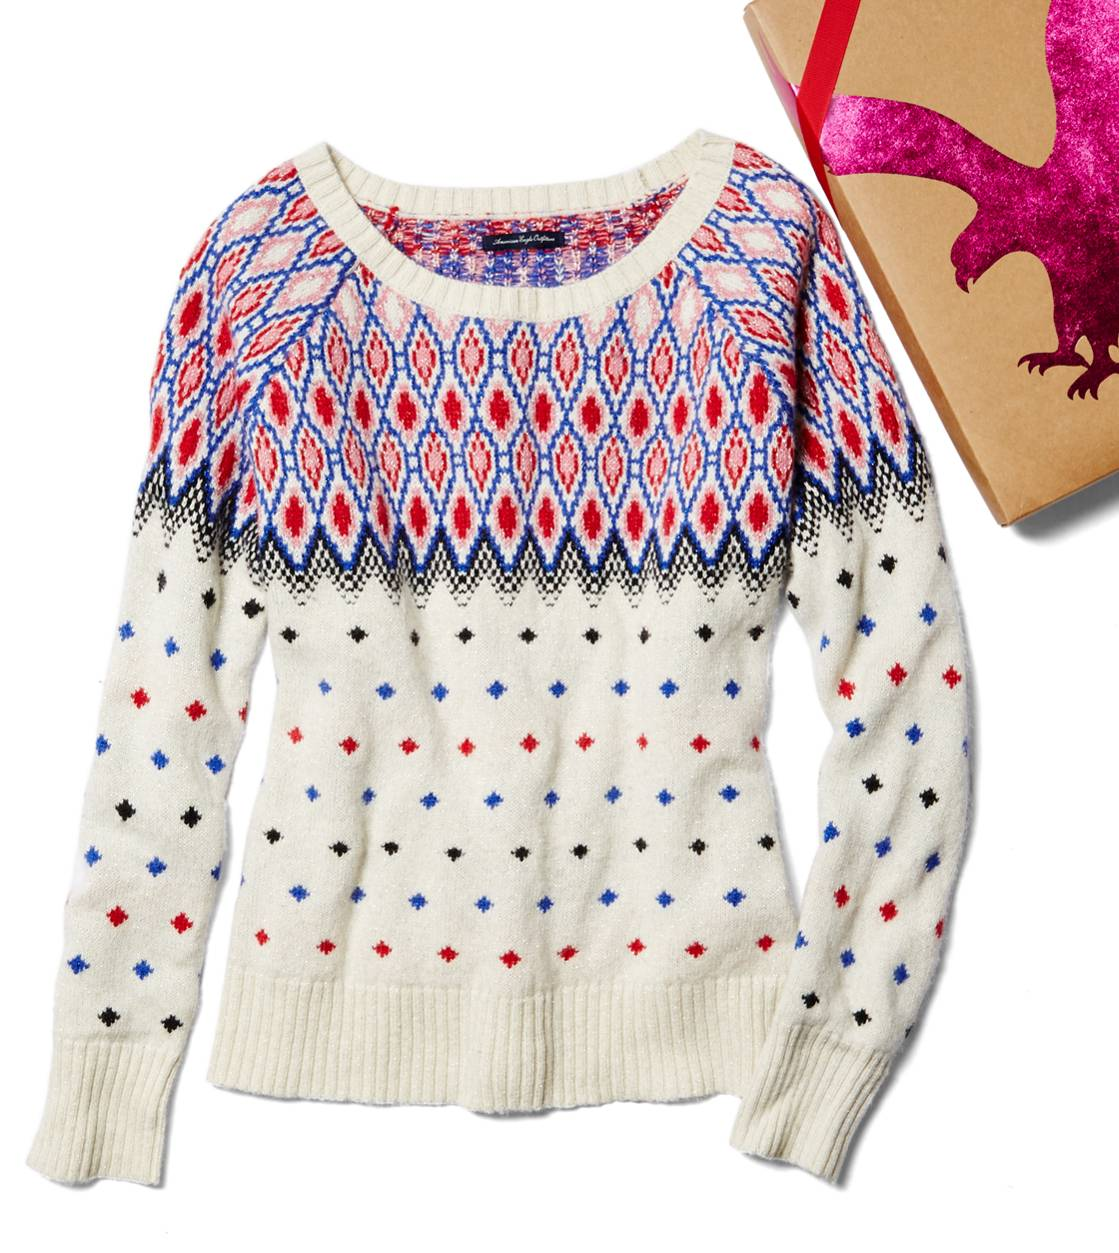 Cream AE Festive Fair Isle Sweater